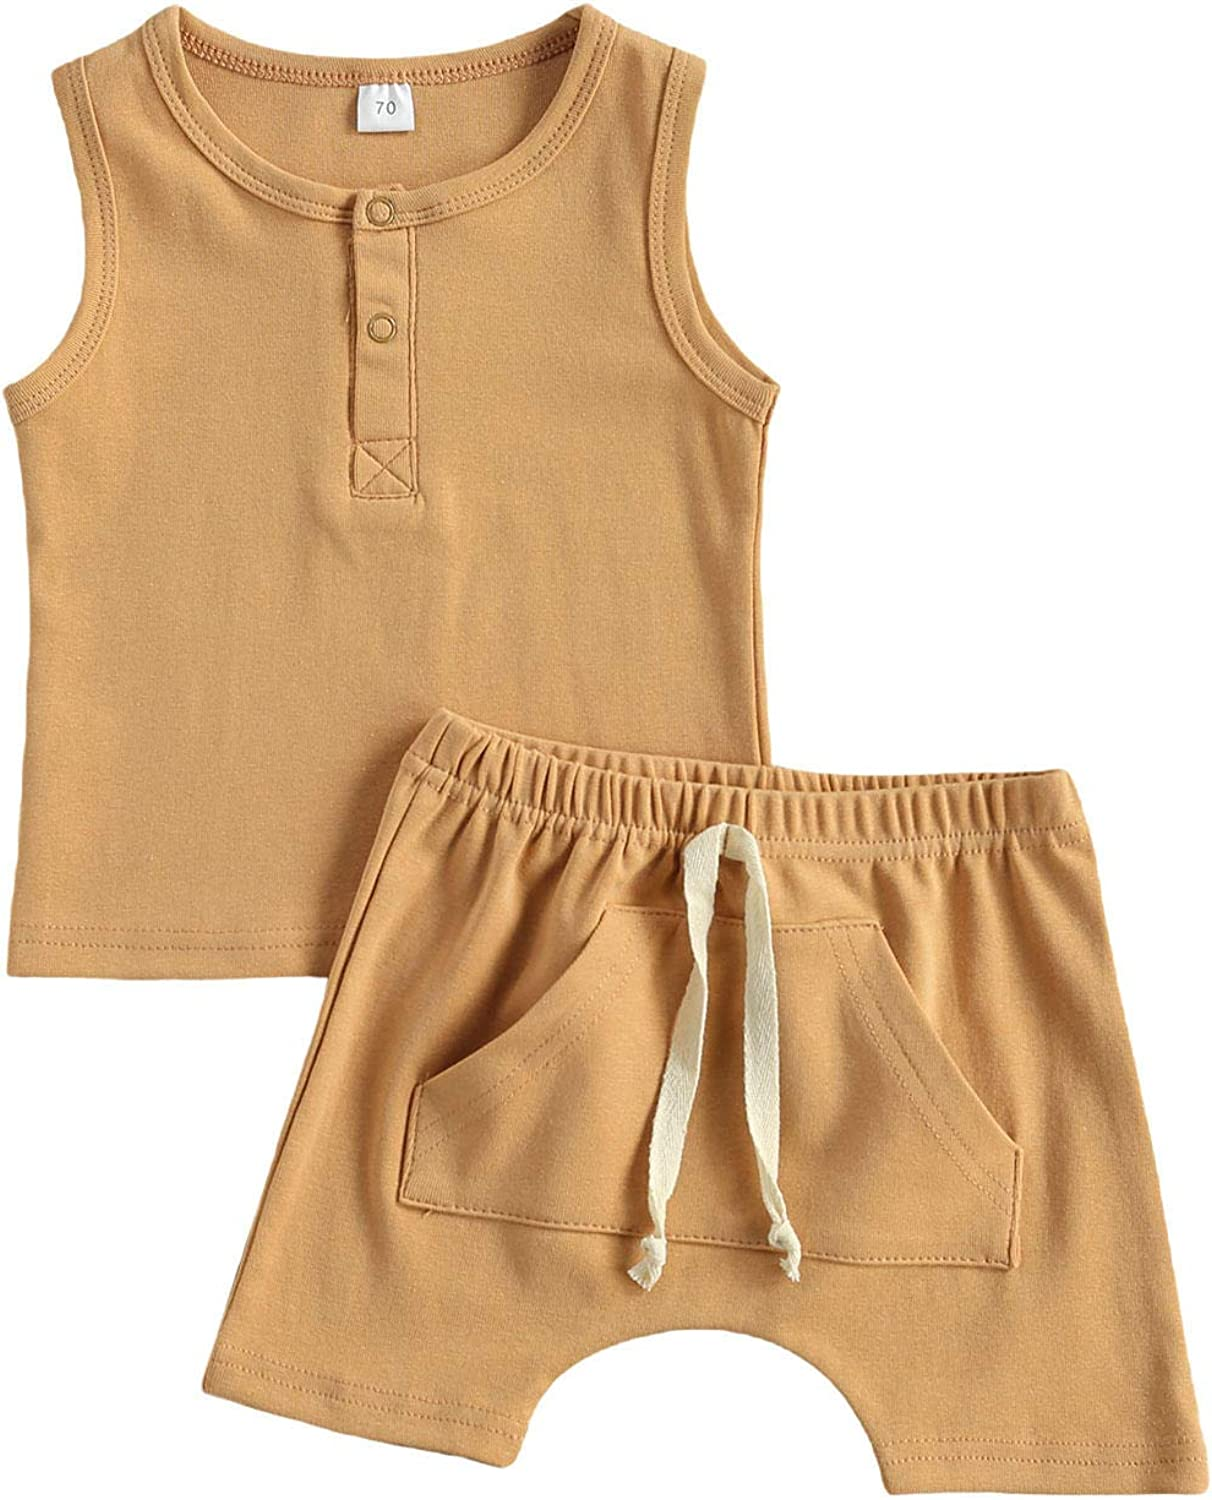 Infant Baby Quality inspection Boys Girls Max 64% OFF Summer Ta Cotton Sleeveless Solid Outfits